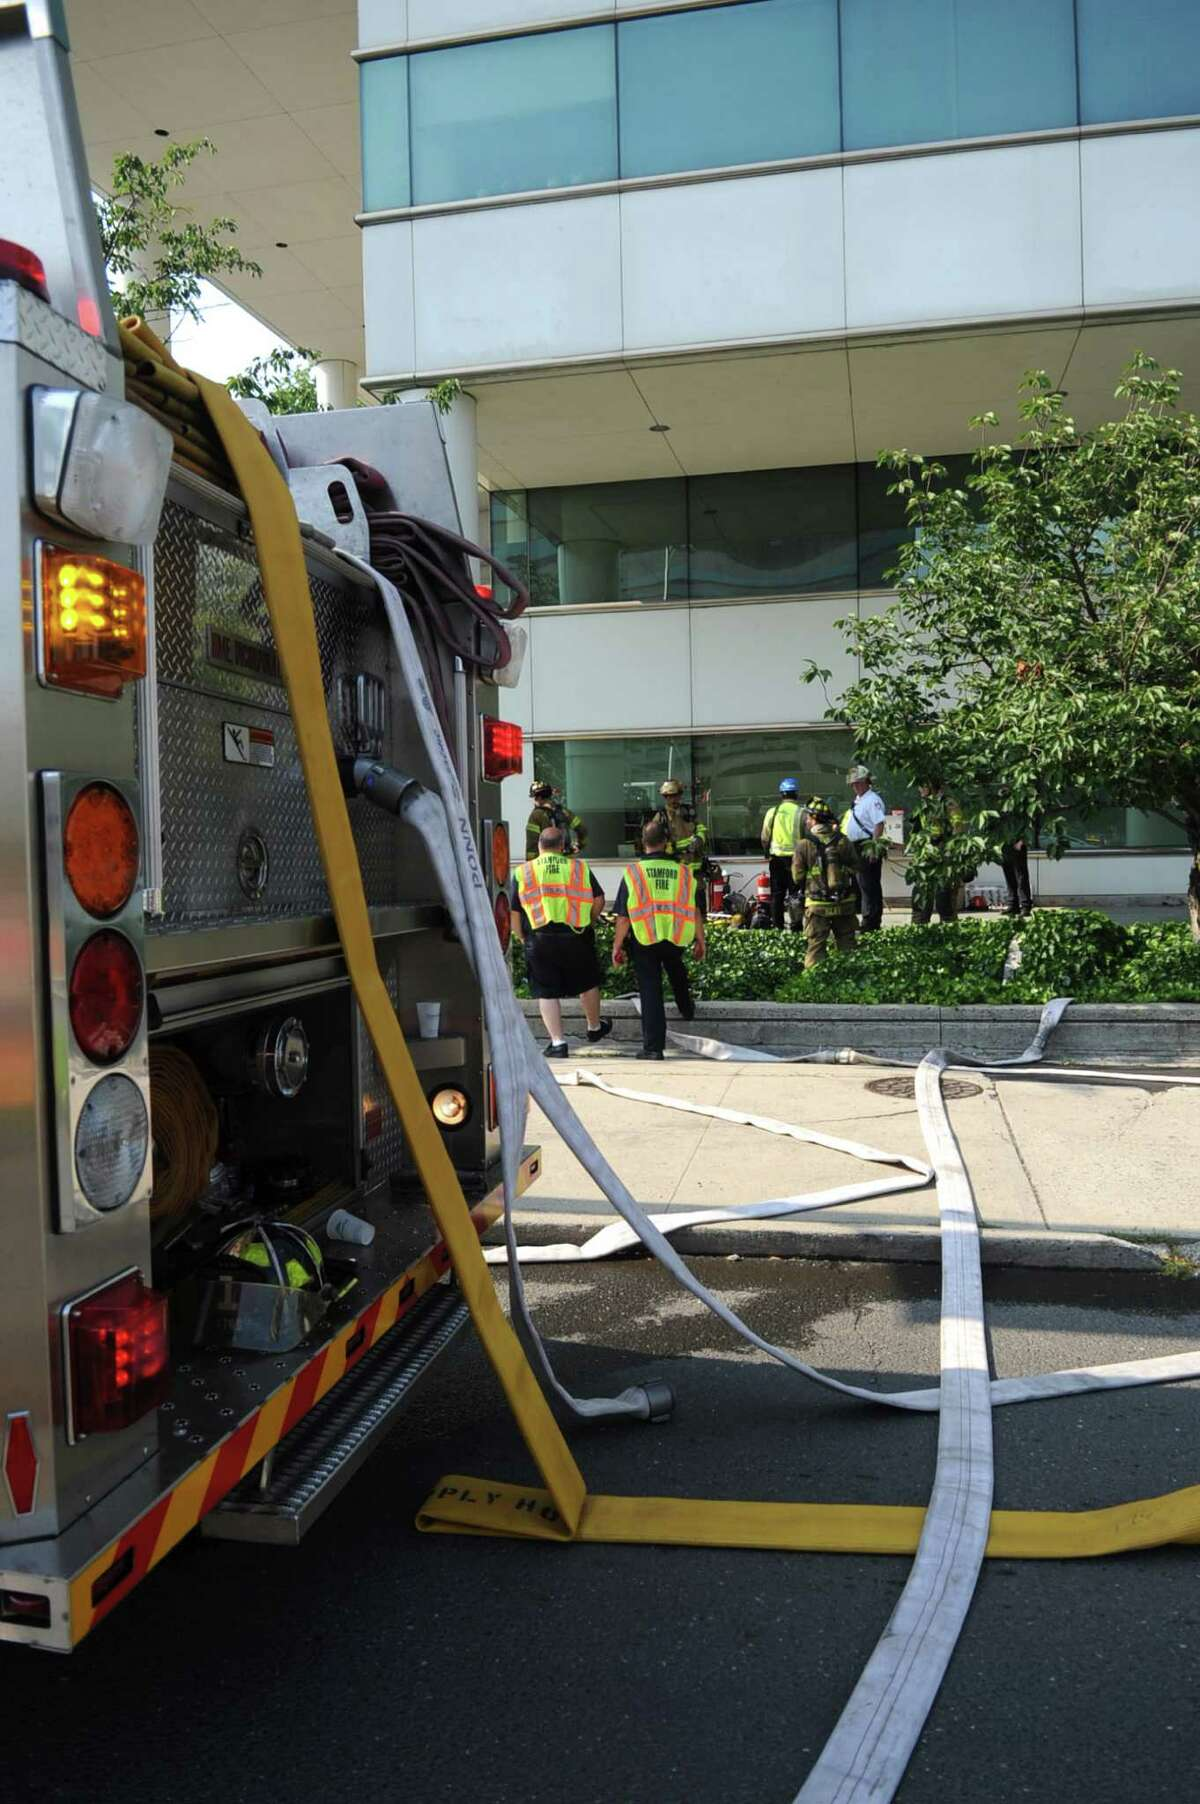 Emergency vehicles line the streets outside Government Center after a transformer near the garage blew up resulting in heavy smoke and the evacuation of Government Center on Wednesday, June 20, 2012.